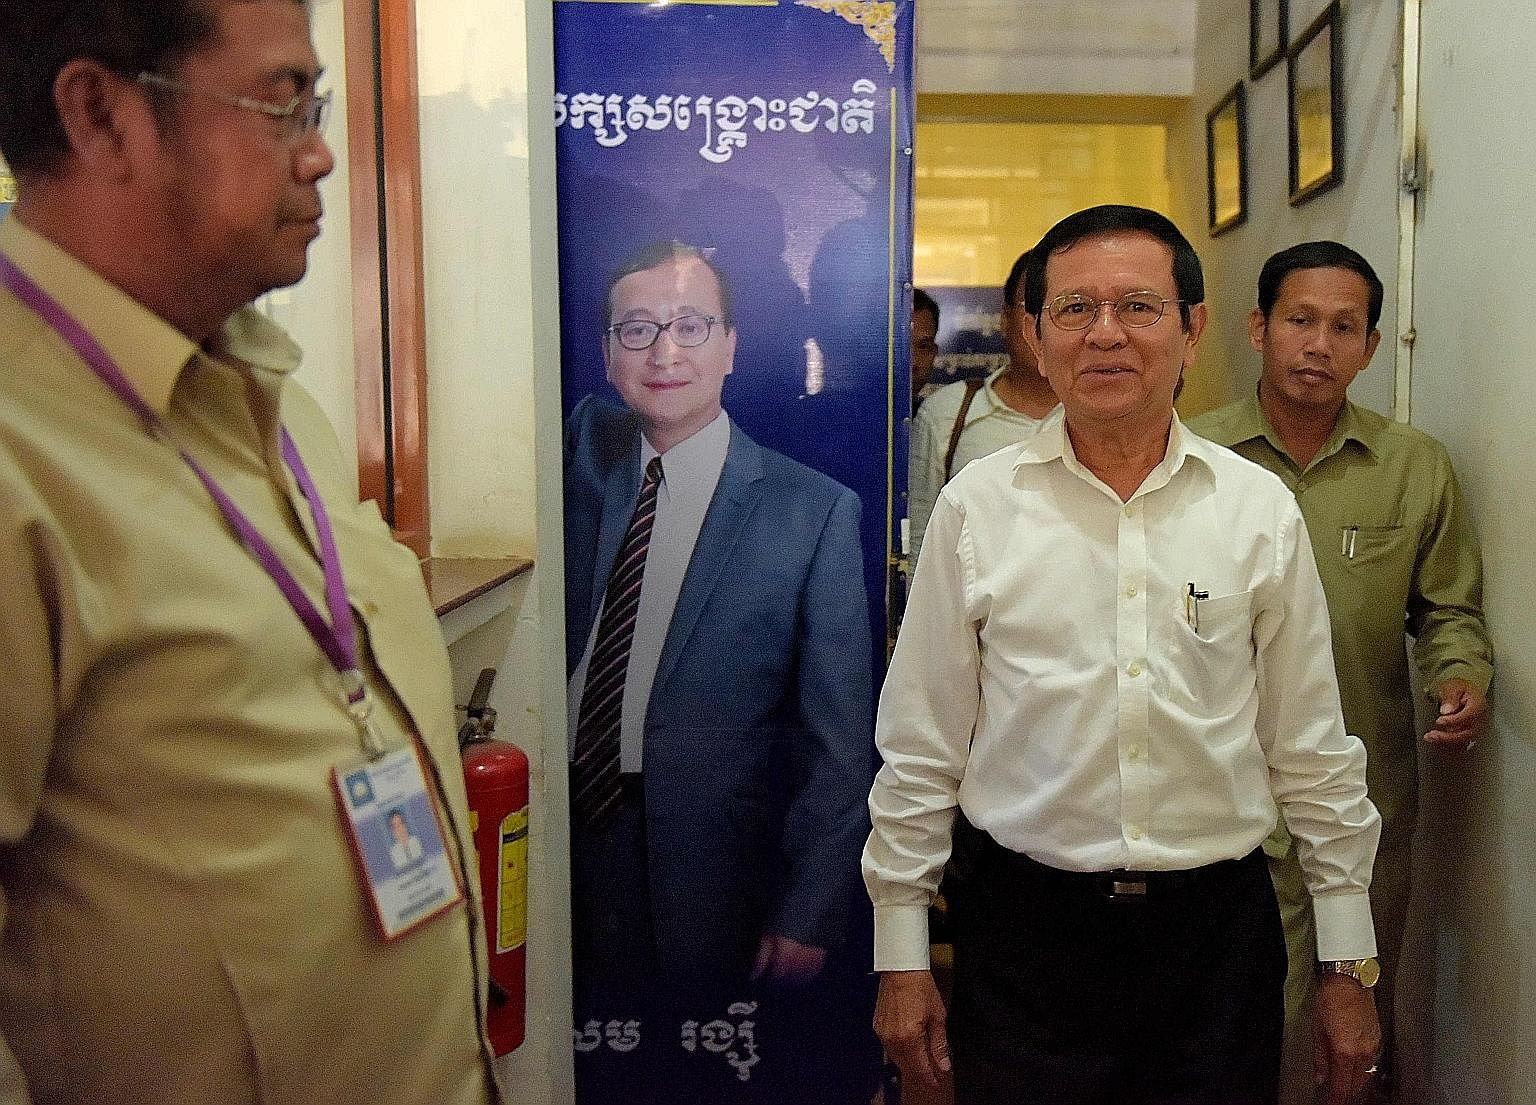 CNRP acting president Kem Sokha (in white shirt) walking past a portrait of exiled leader Sam Rainsy, who resigned as president of the opposition party recently, at its headquarters in Phnom Penh on Sunday. CNRP, Cambodia's leading opposition party,